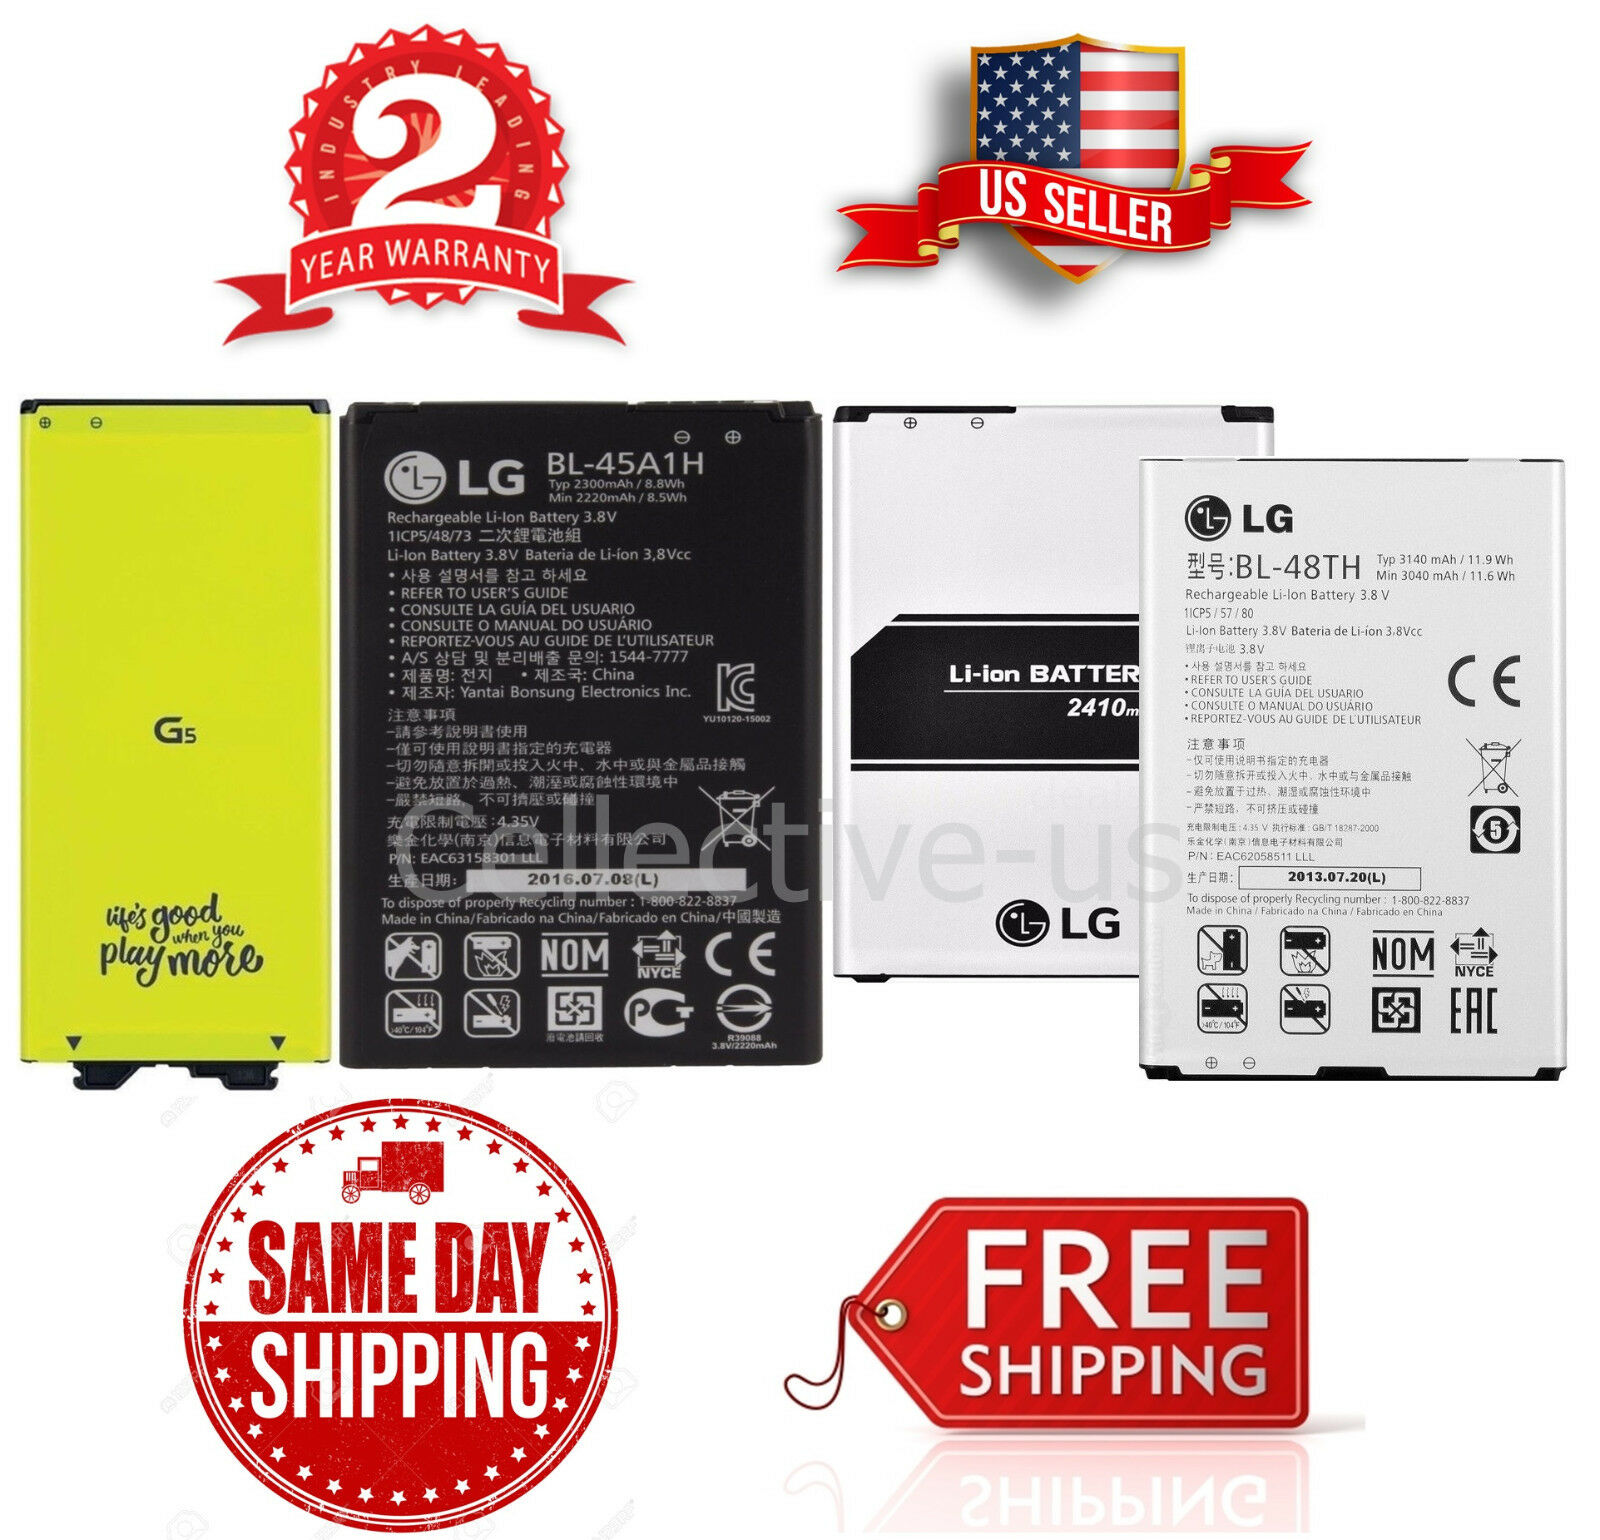 New Oem Lg G2 G3 G4 G5 G6 V10 V20 K10 K7 K8 K4 Optimus G Pro 2 D802 32gb White Free Flip Cover 1 Of 1free Shipping